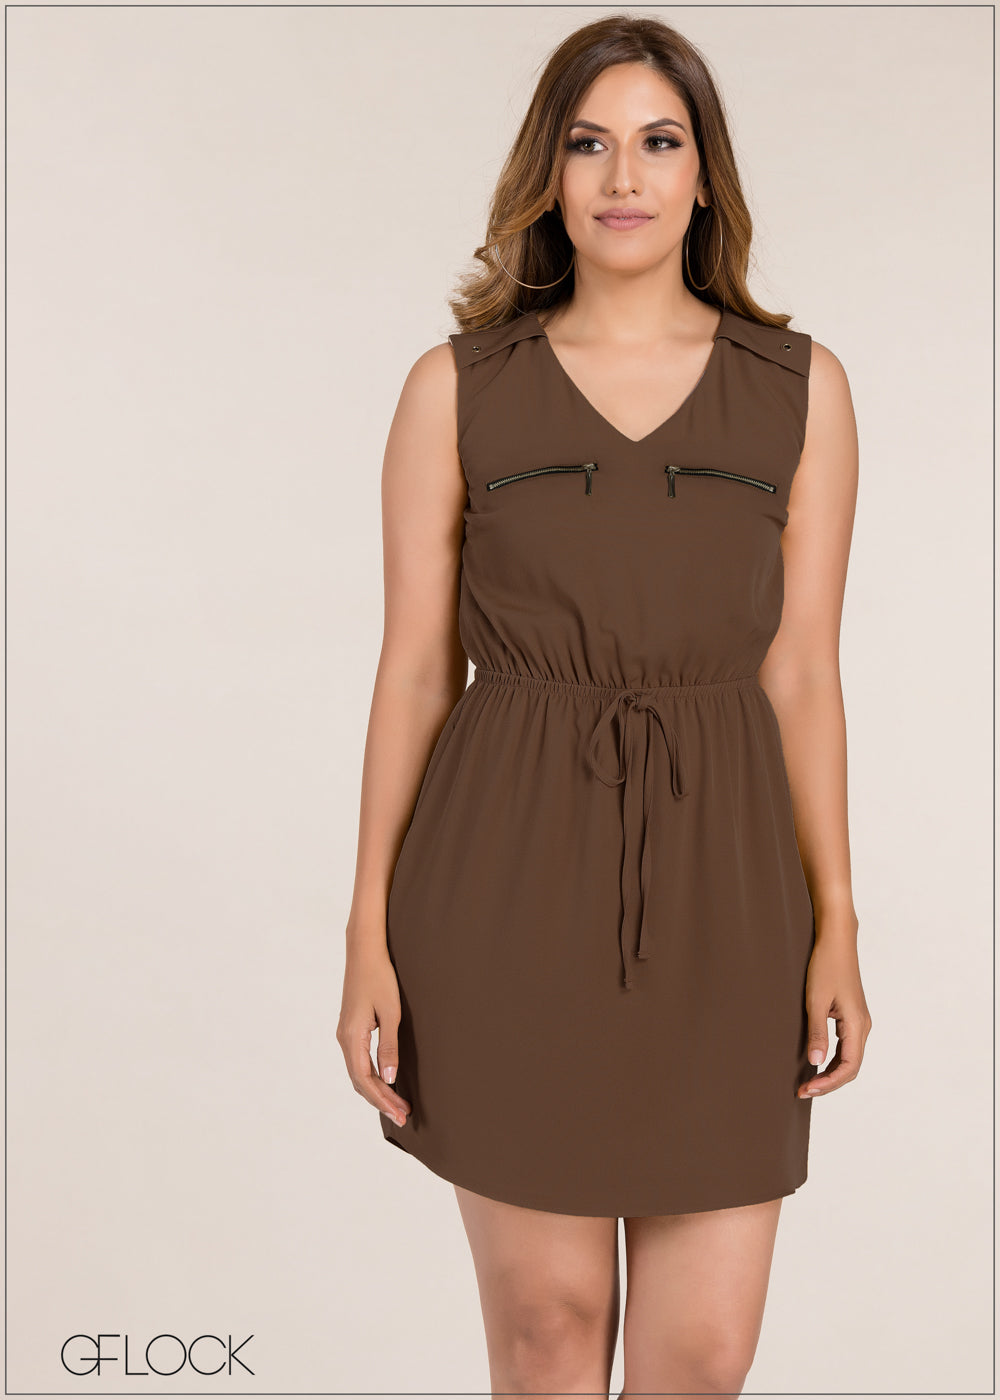 Pocket Detailed Dress - GFLOCK.LK